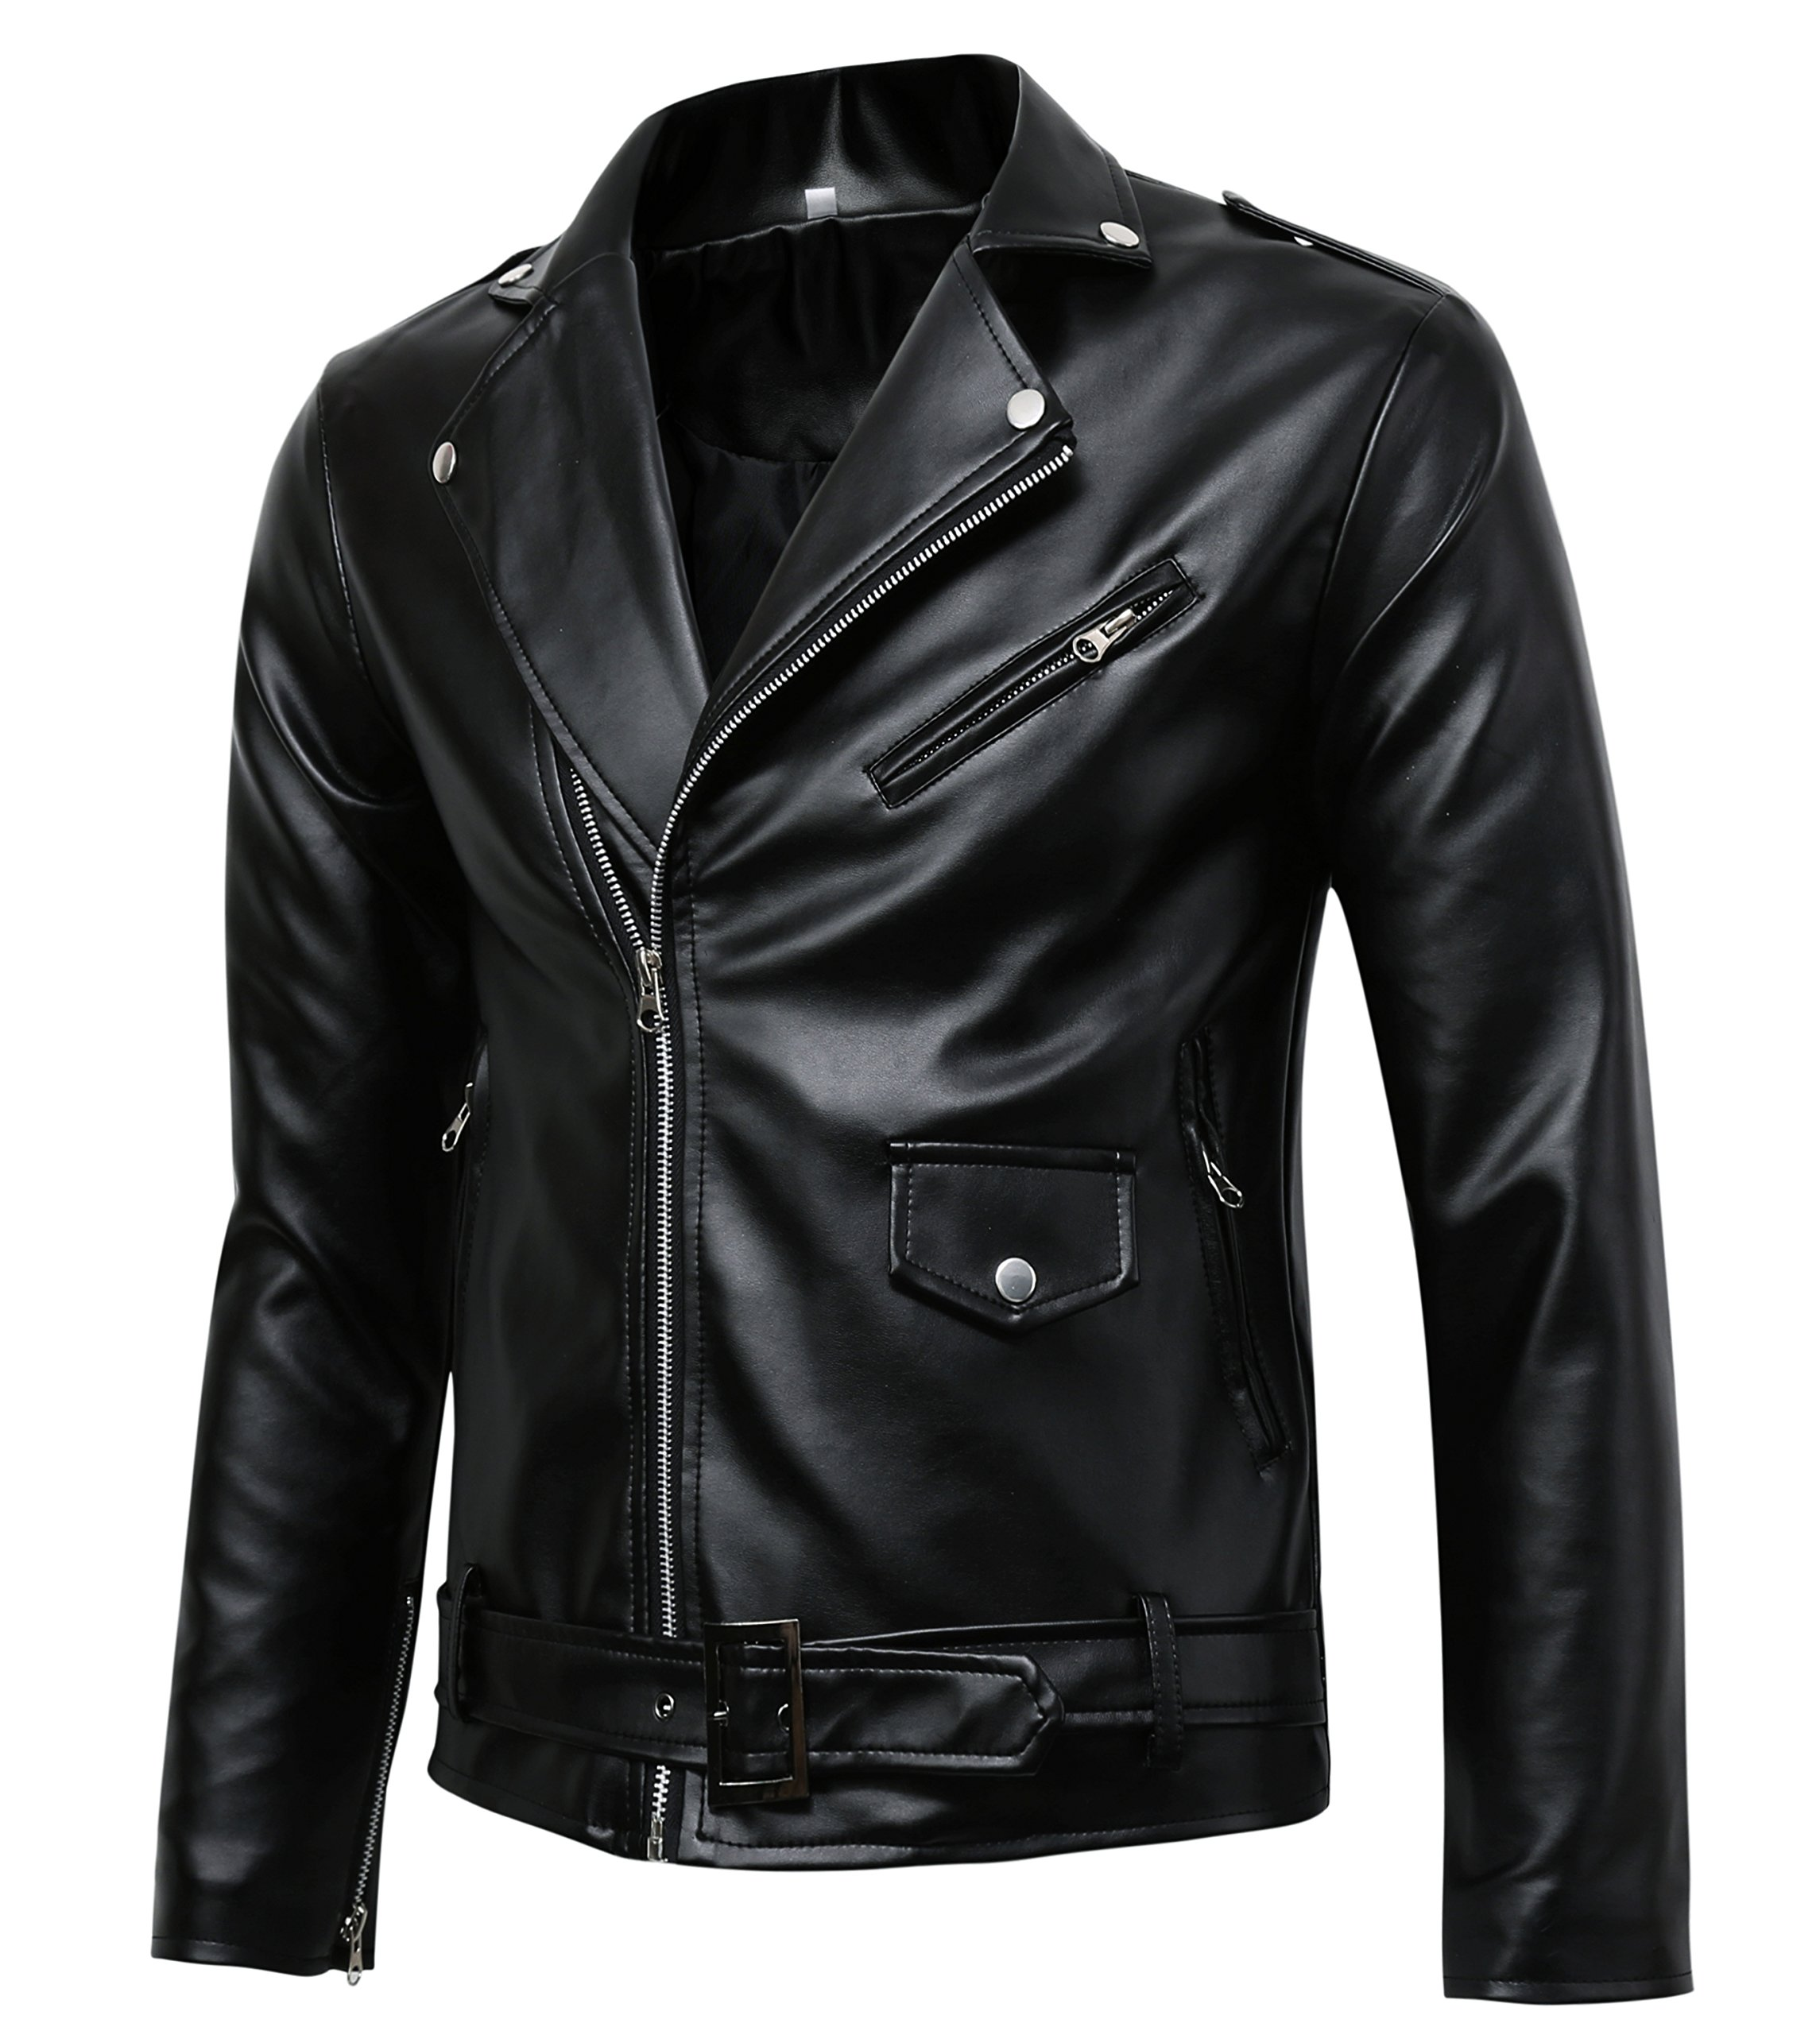 Men's Classic Police Style Faux Leather Motorcycle Jacket, Black, X-Large by Benibos